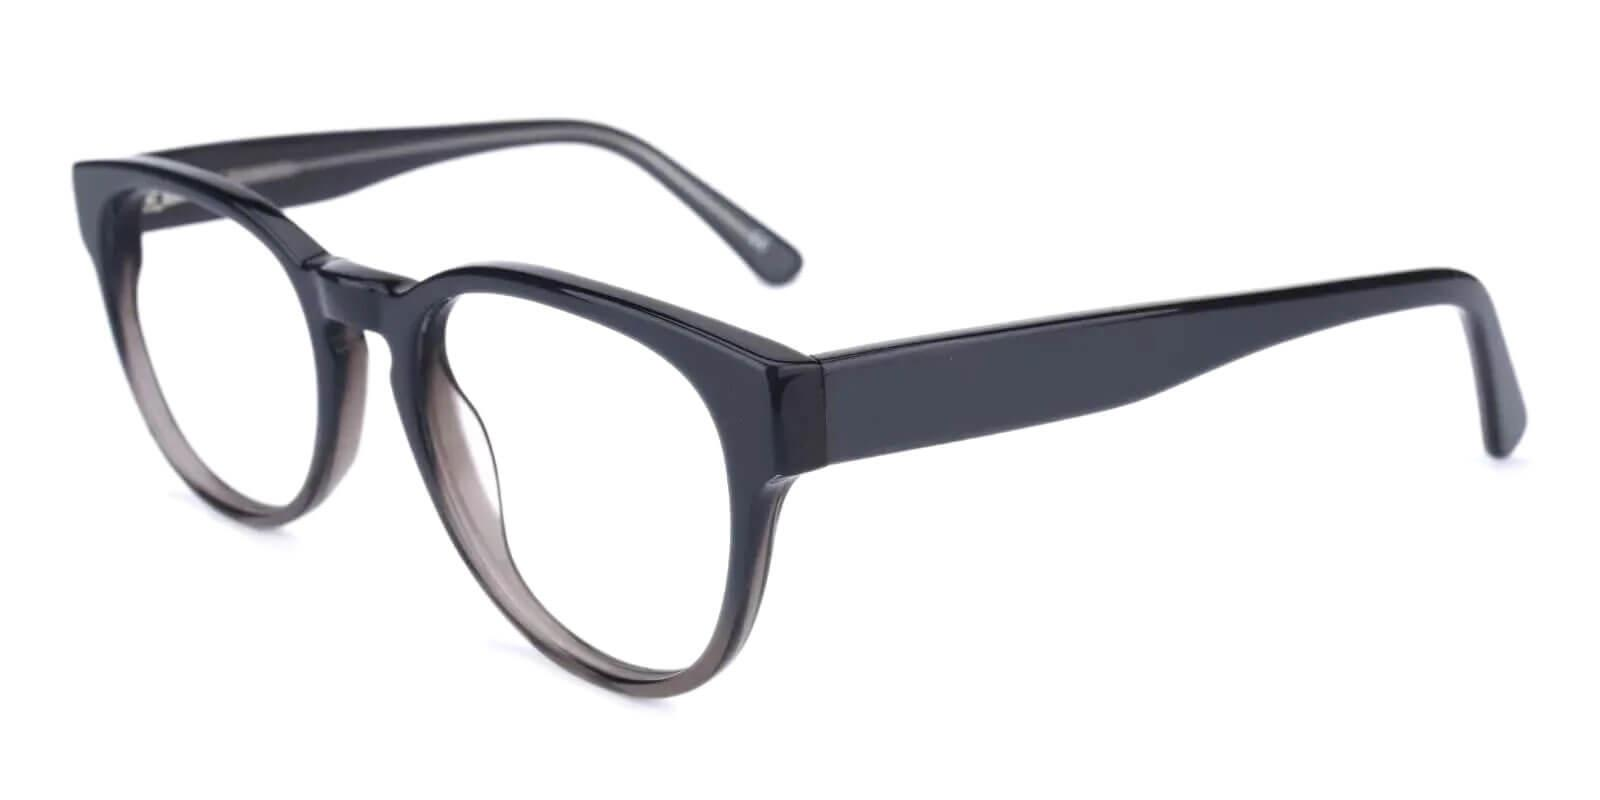 Aurora Gray Acetate Eyeglasses , Fashion , SpringHinges , UniversalBridgeFit Frames from ABBE Glasses